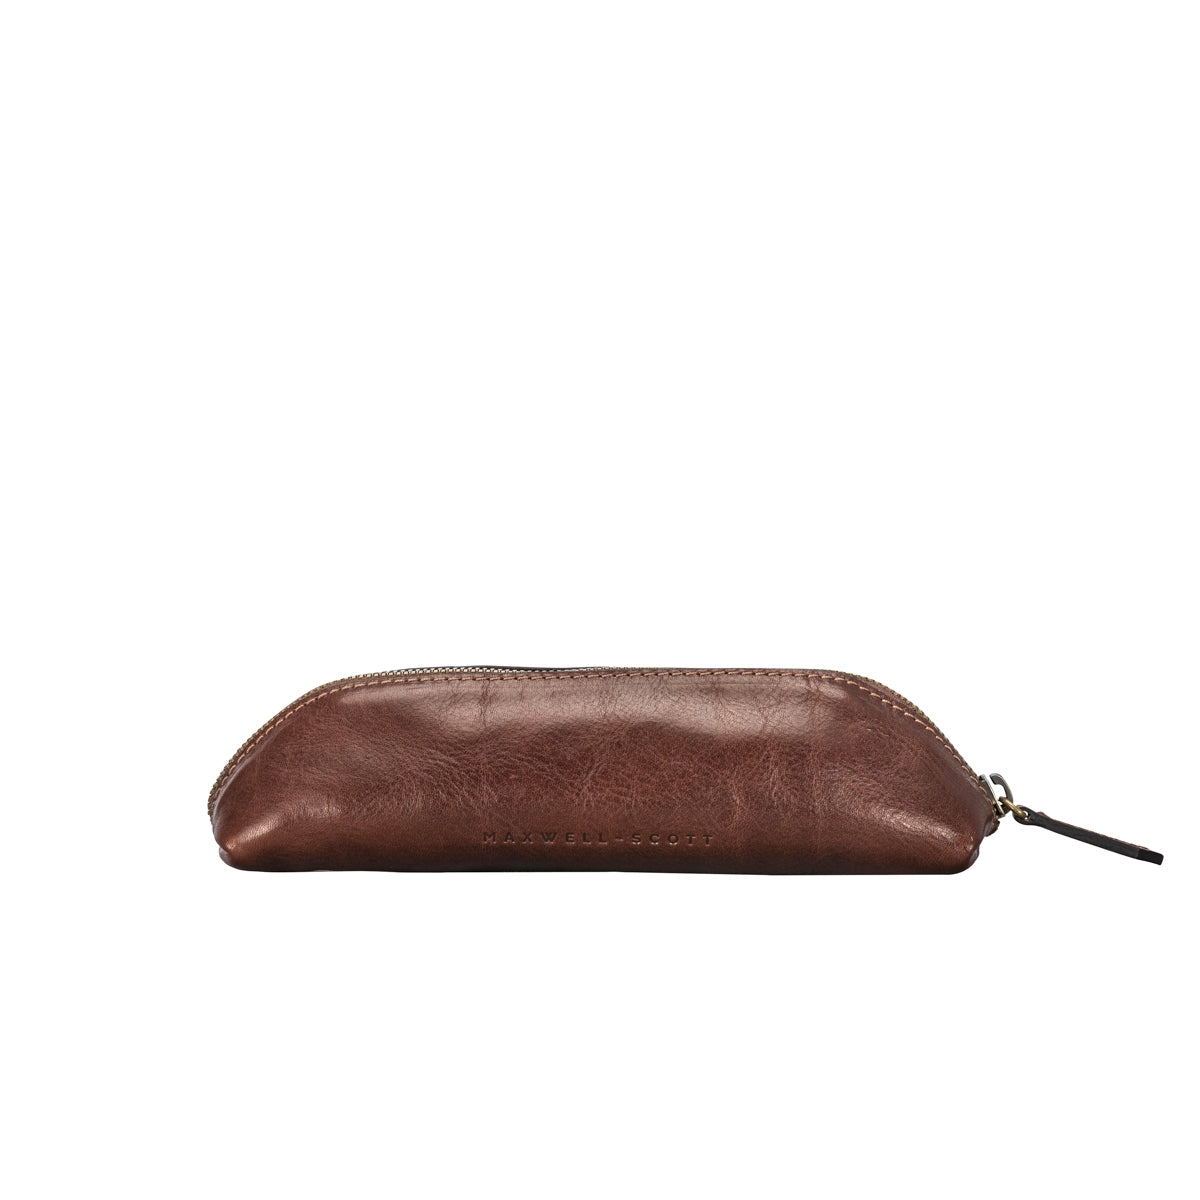 Image 4 of the 'Lorena' Leather Makeup Brush Case Tan